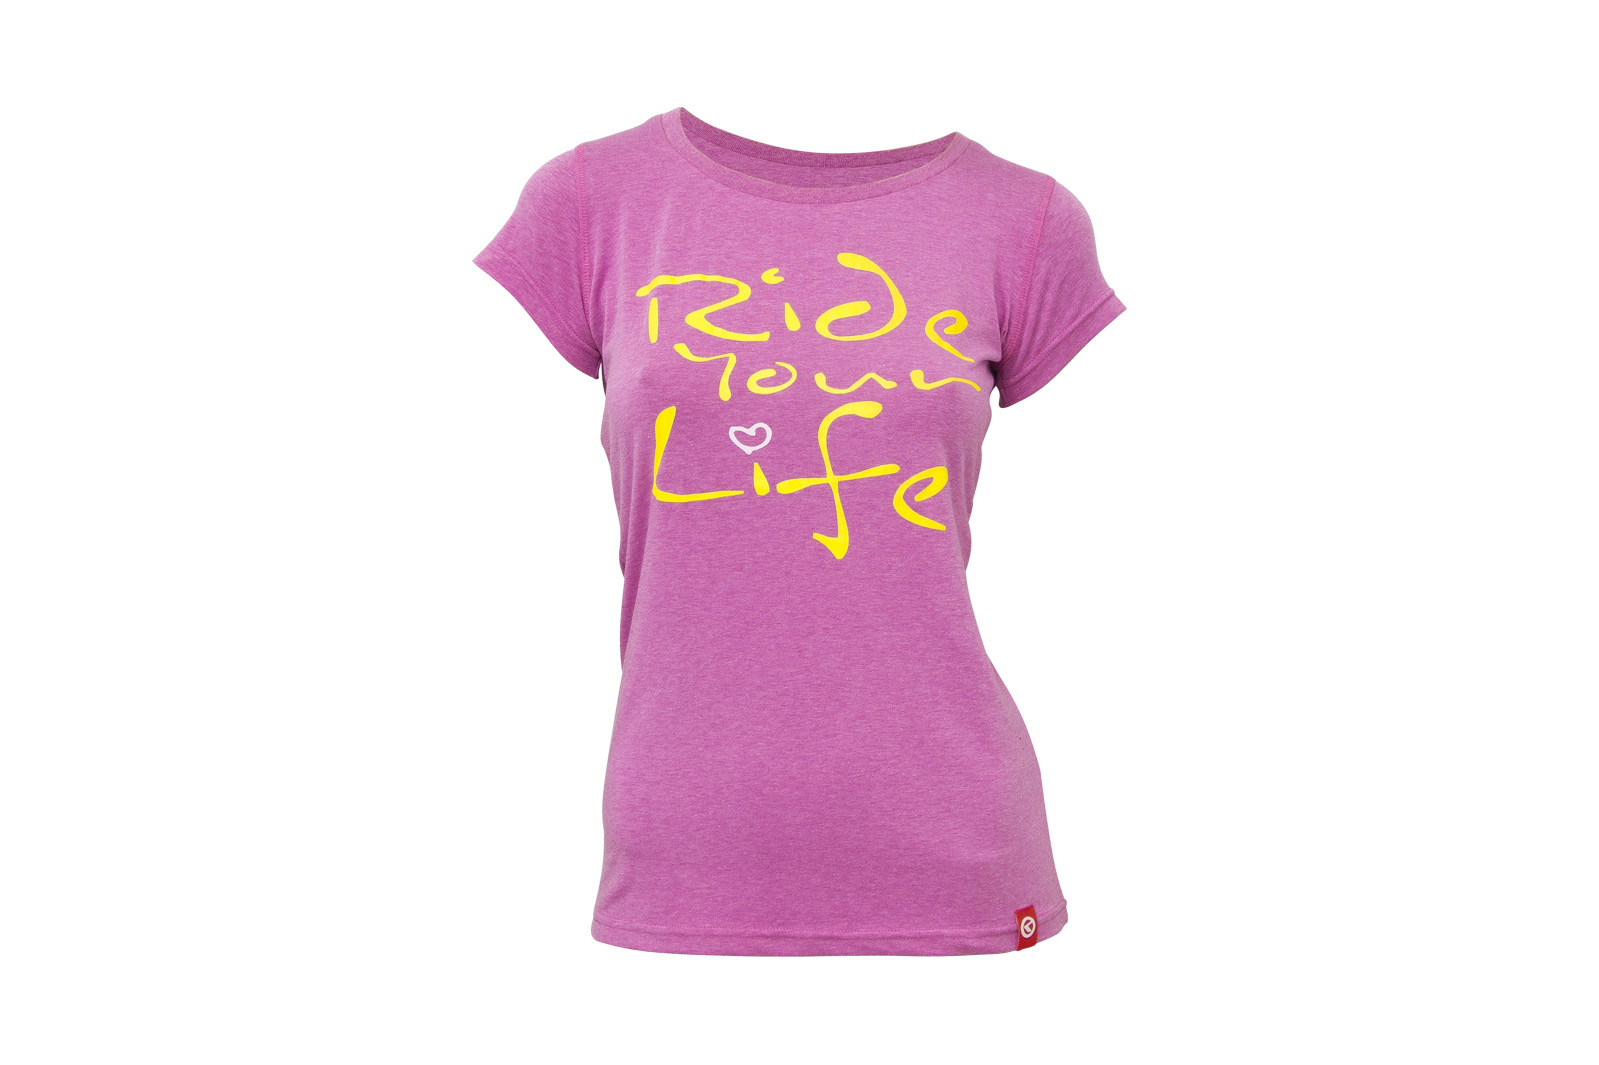 T-Shirt KELLYS WOMEN´S RIDE YOUR LIFE kurzarm Pink - L - Mega Handelsgesellschaft